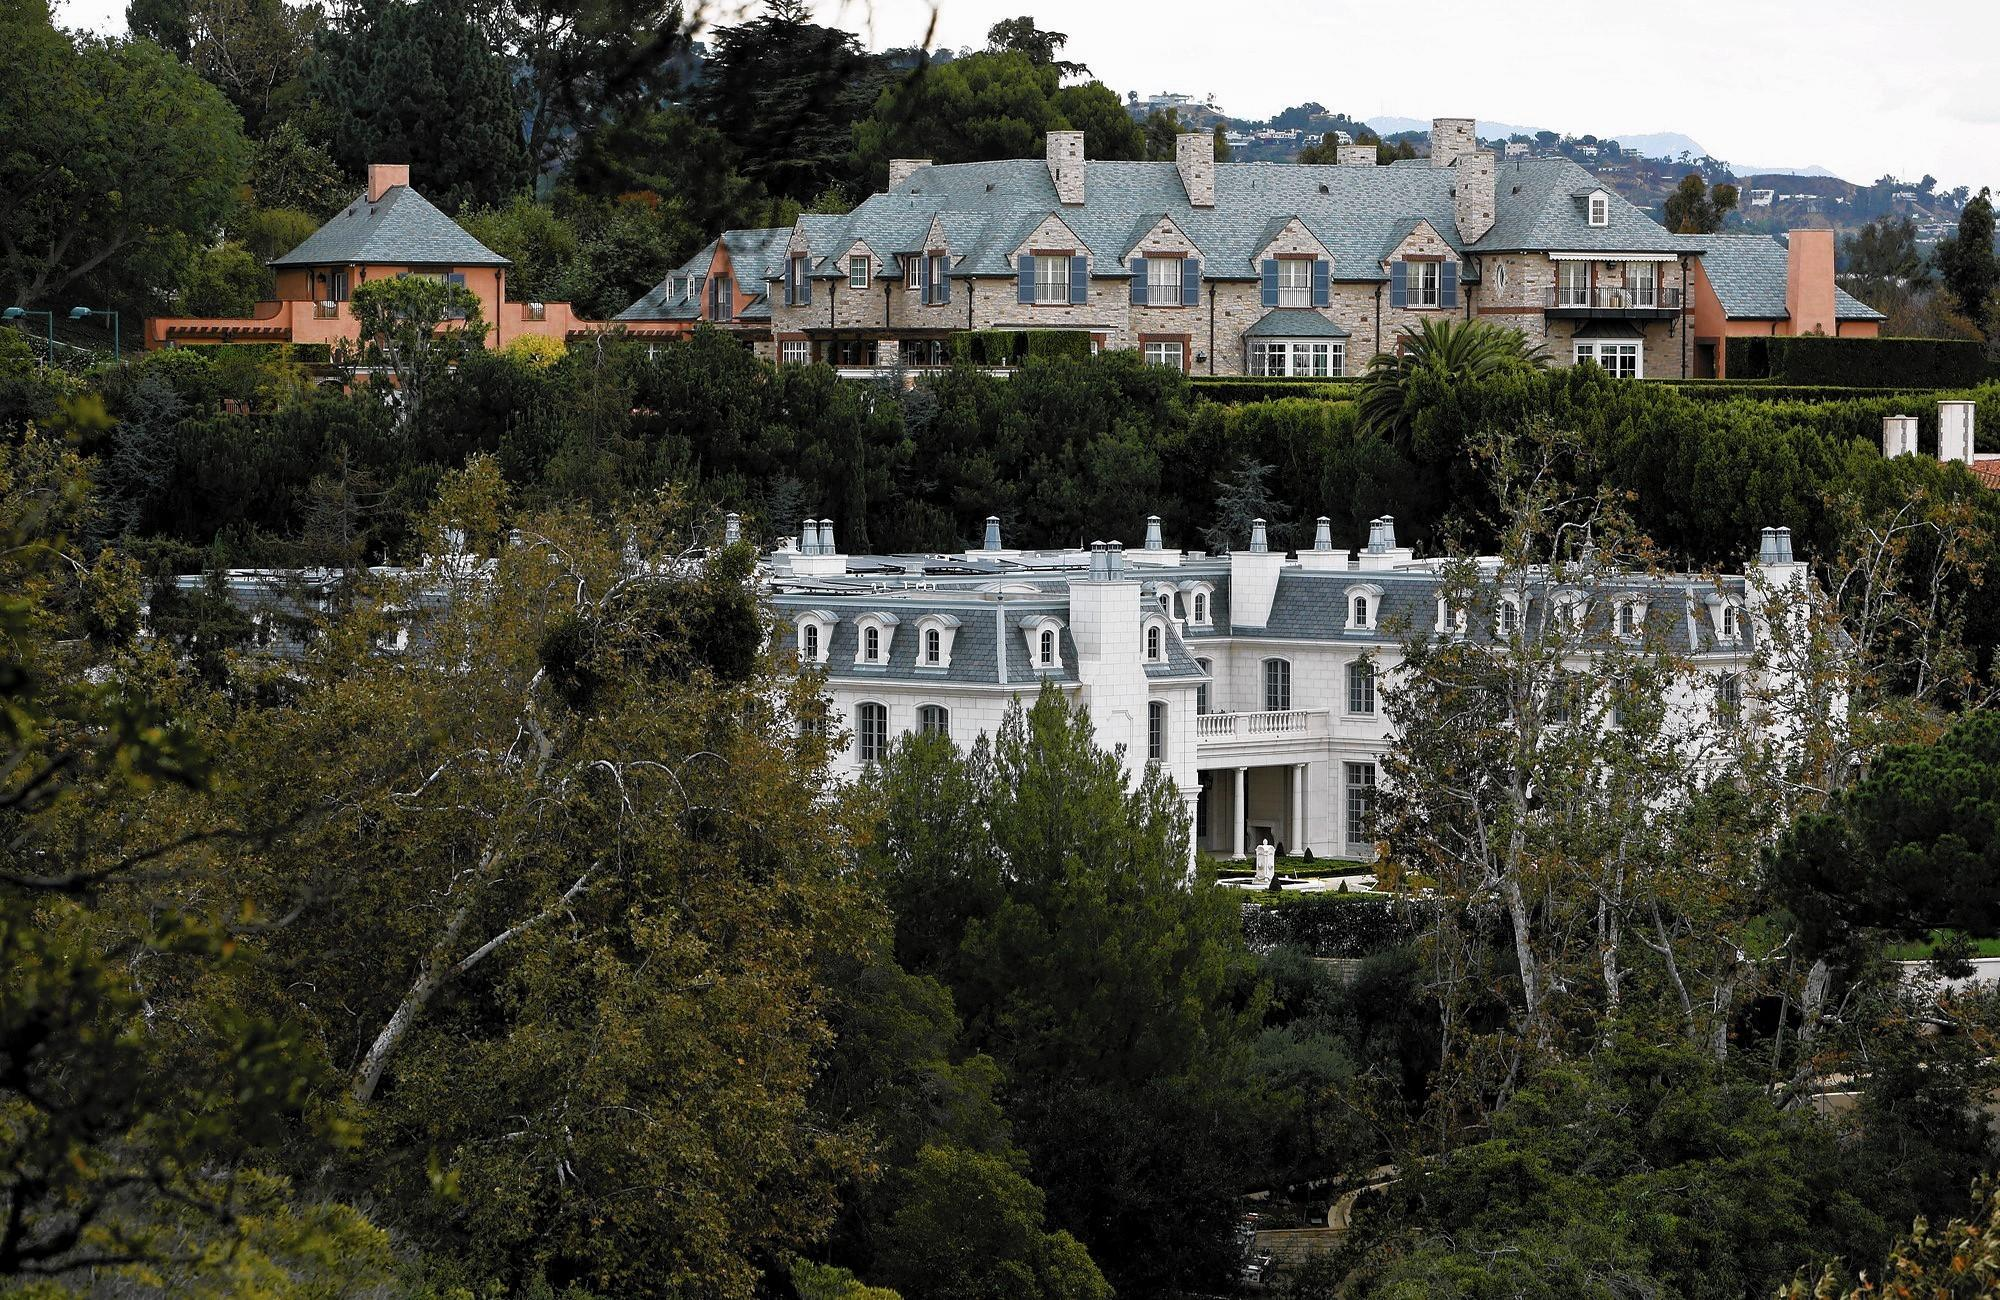 Chateau des Fleurs, at bottom in photo, is nearing completion in Bel-Air. At 60,000 square feet, it is still not the biggest home in Los Angeles, but it's nothing to sneeze at.